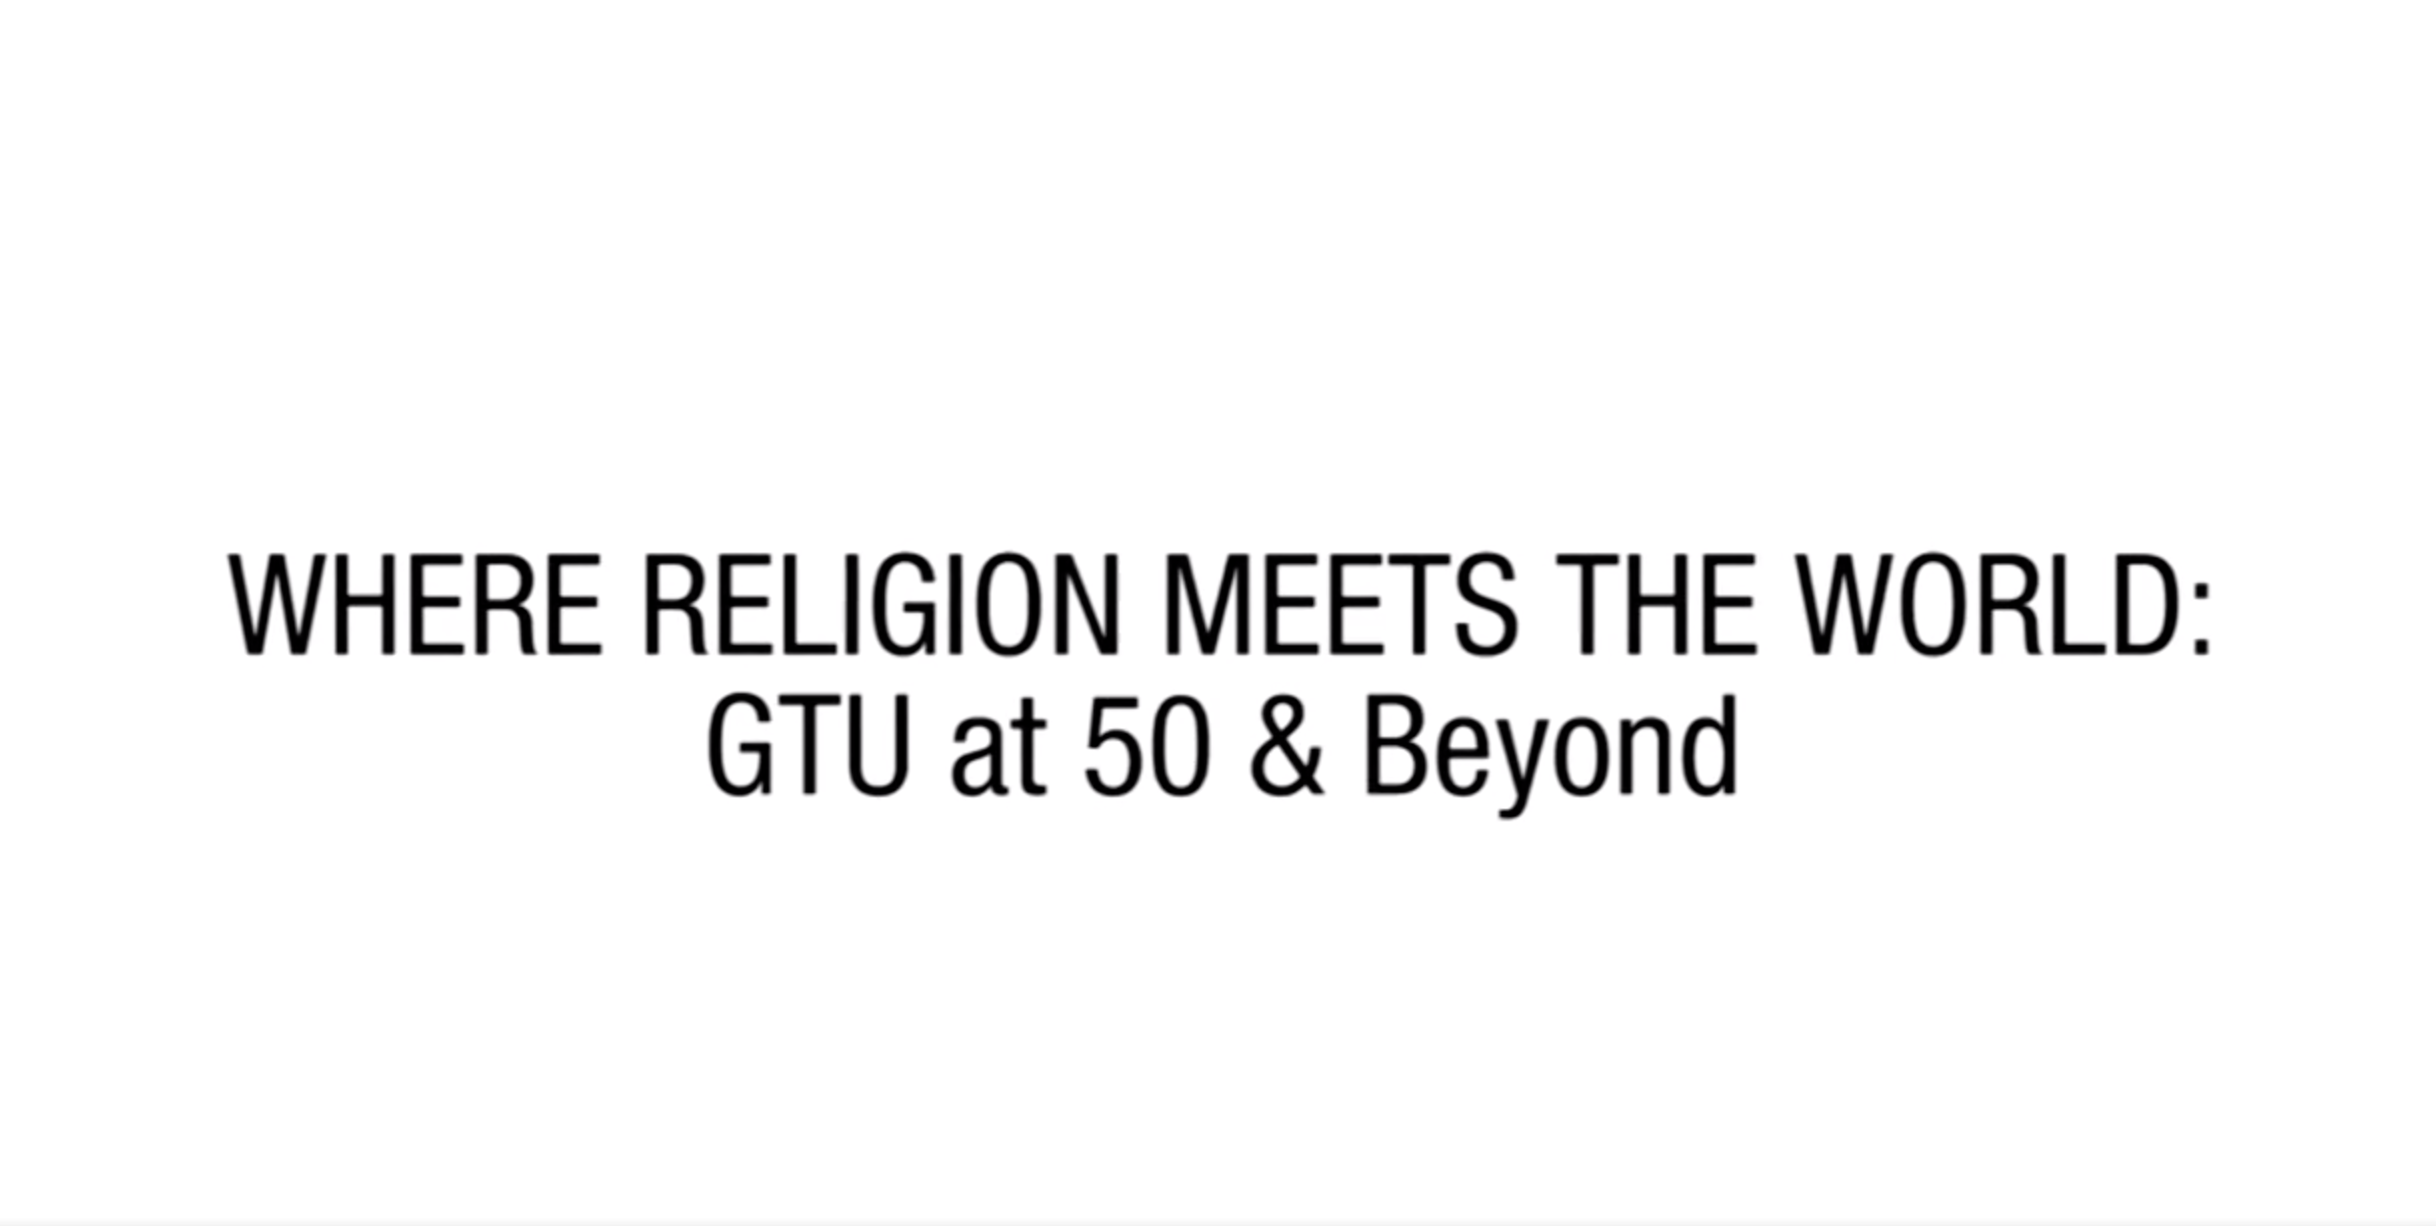 Where Religion Meets The World